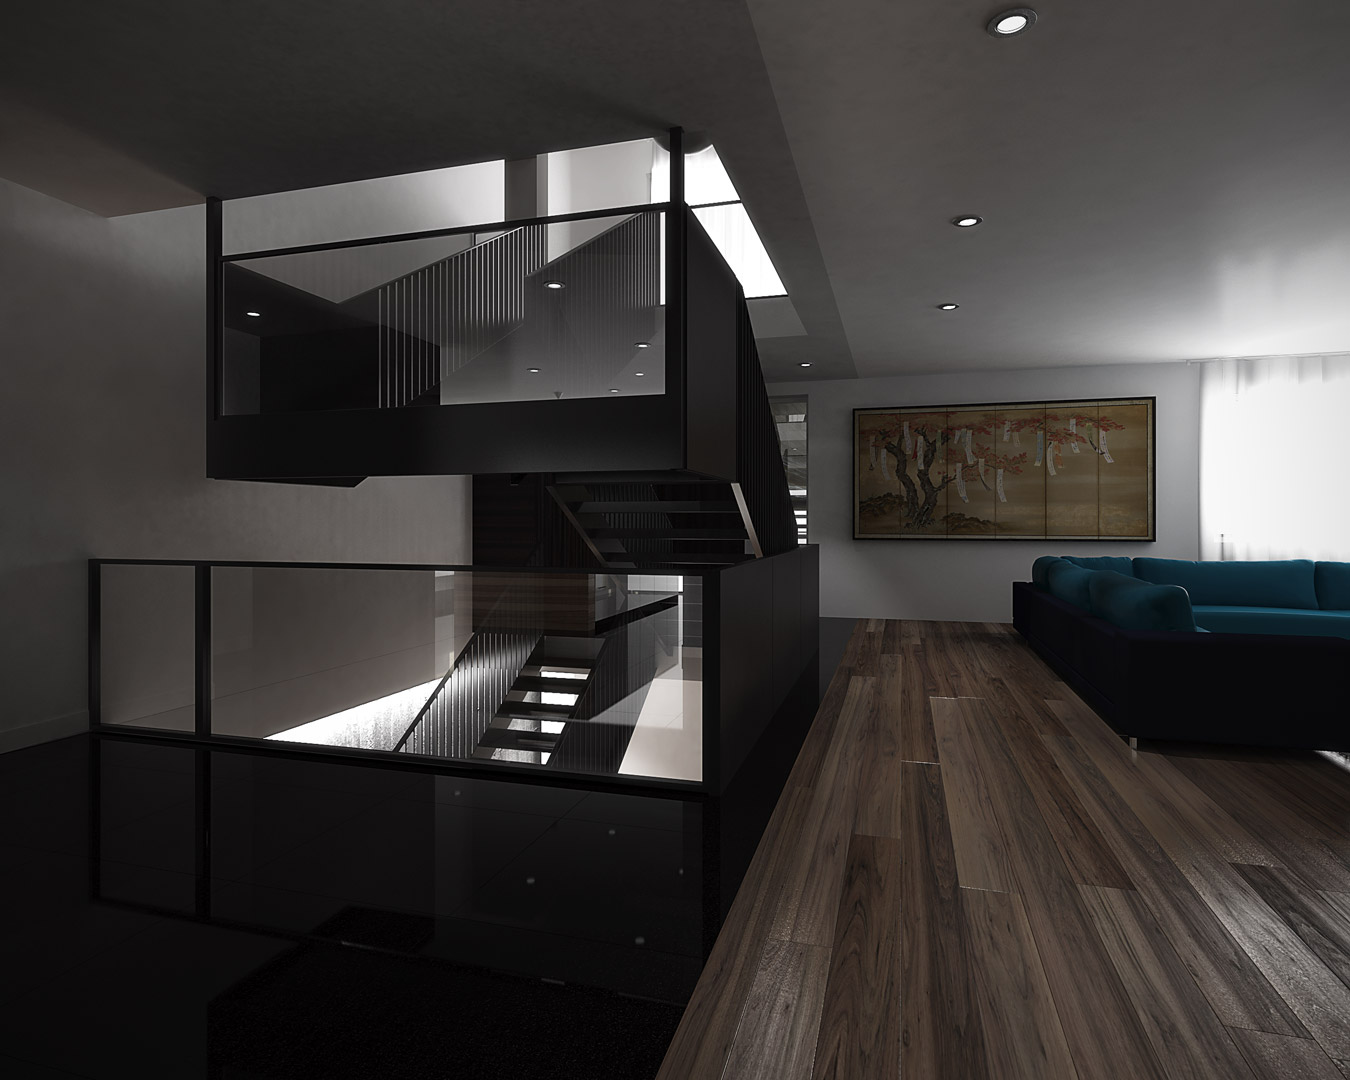 Boardroom v2 - Easy3dsource - Architectural Visualization News